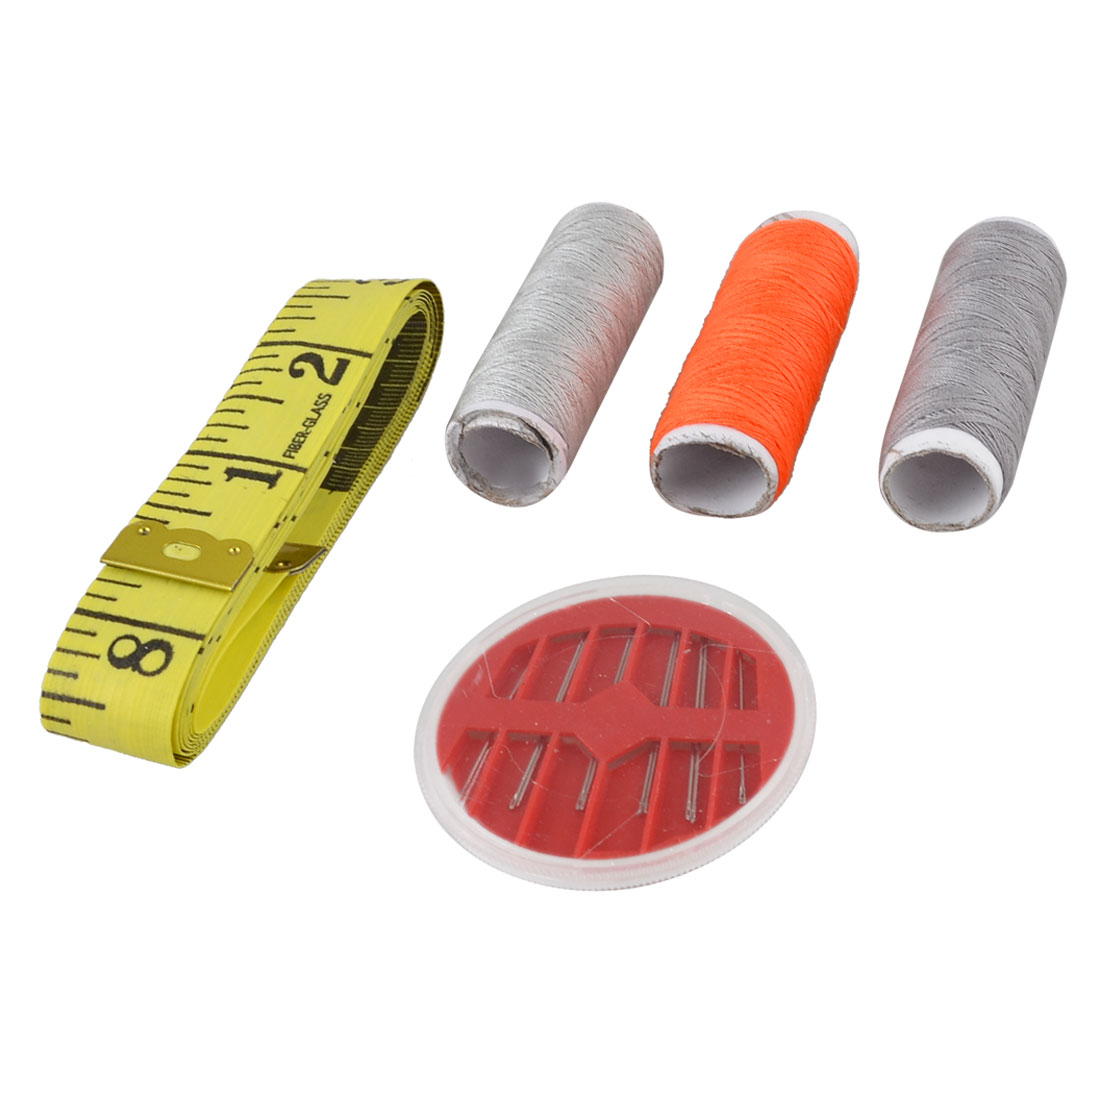 Household Sewing Tool Yellow Measuring Tape Needles Multicolor Thread Spools